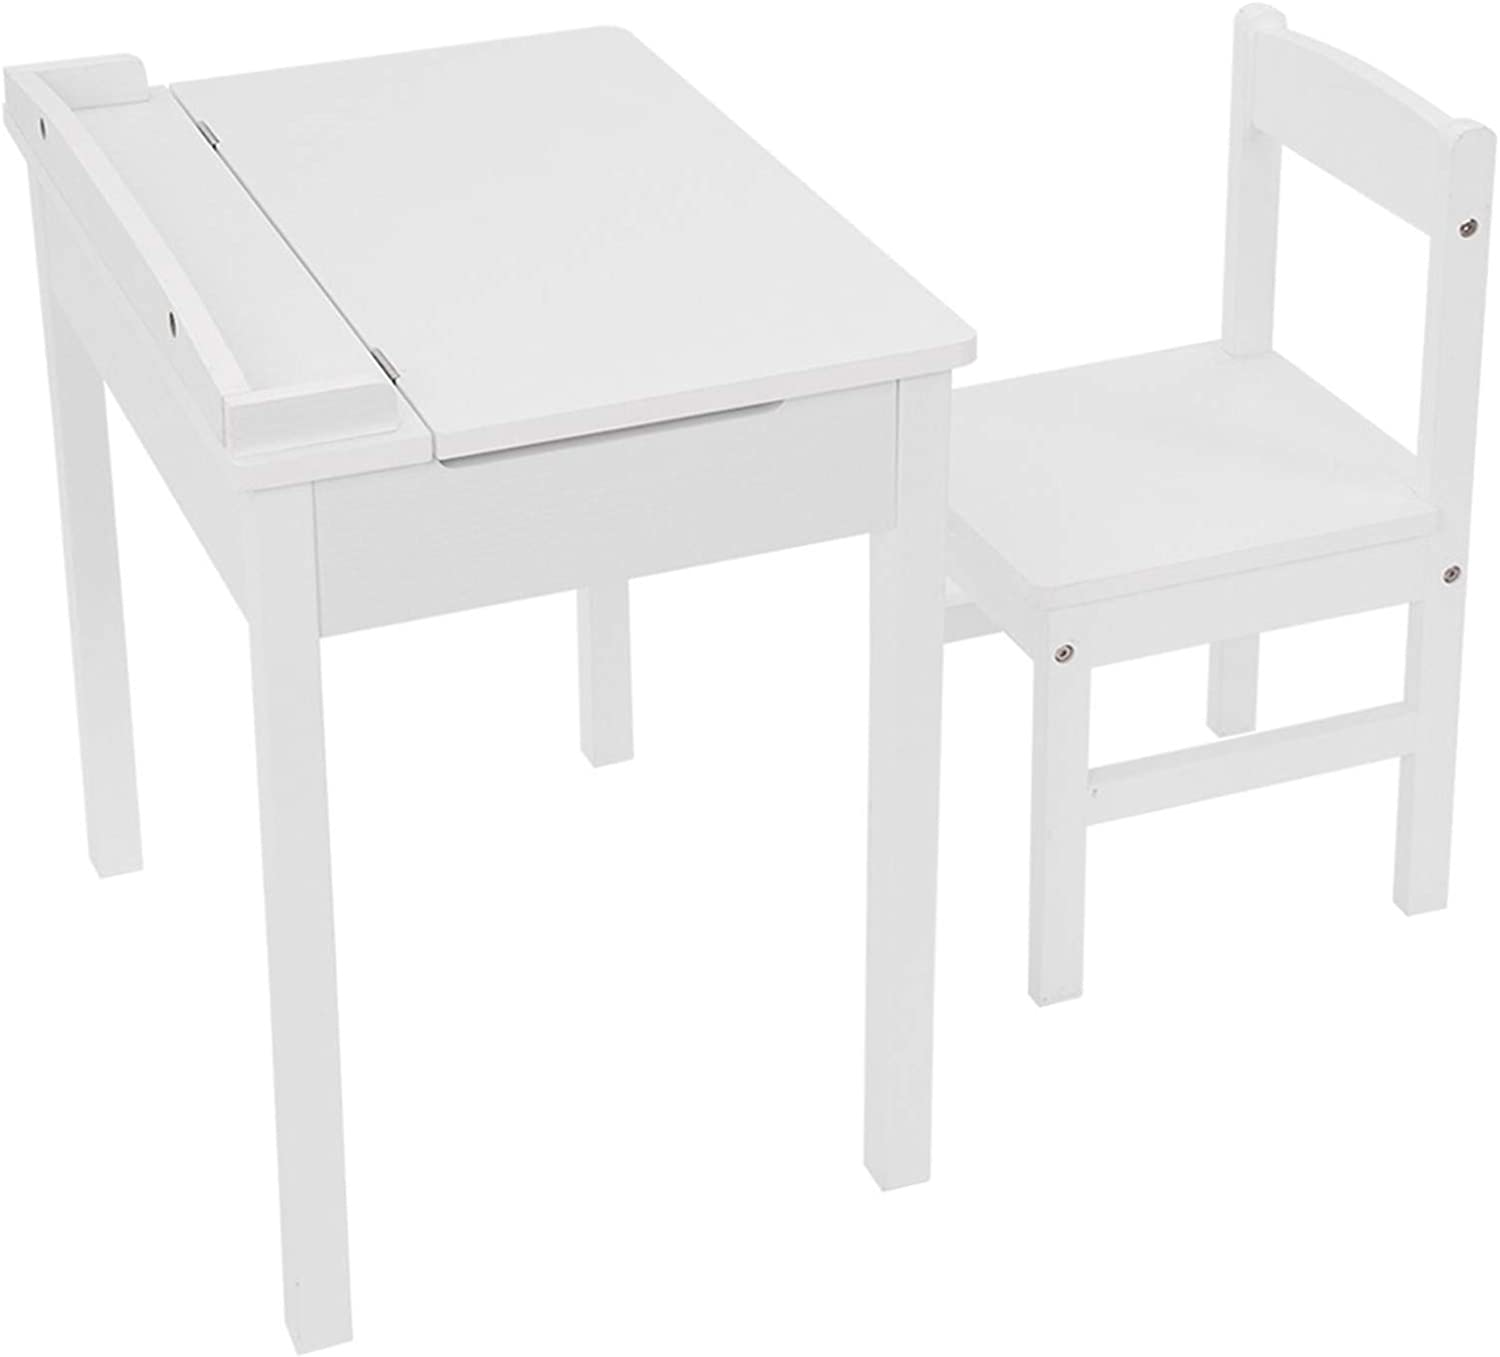 Meempress Toddler Desk In a popularity Chair Homework Kids St for Sales results No. 1